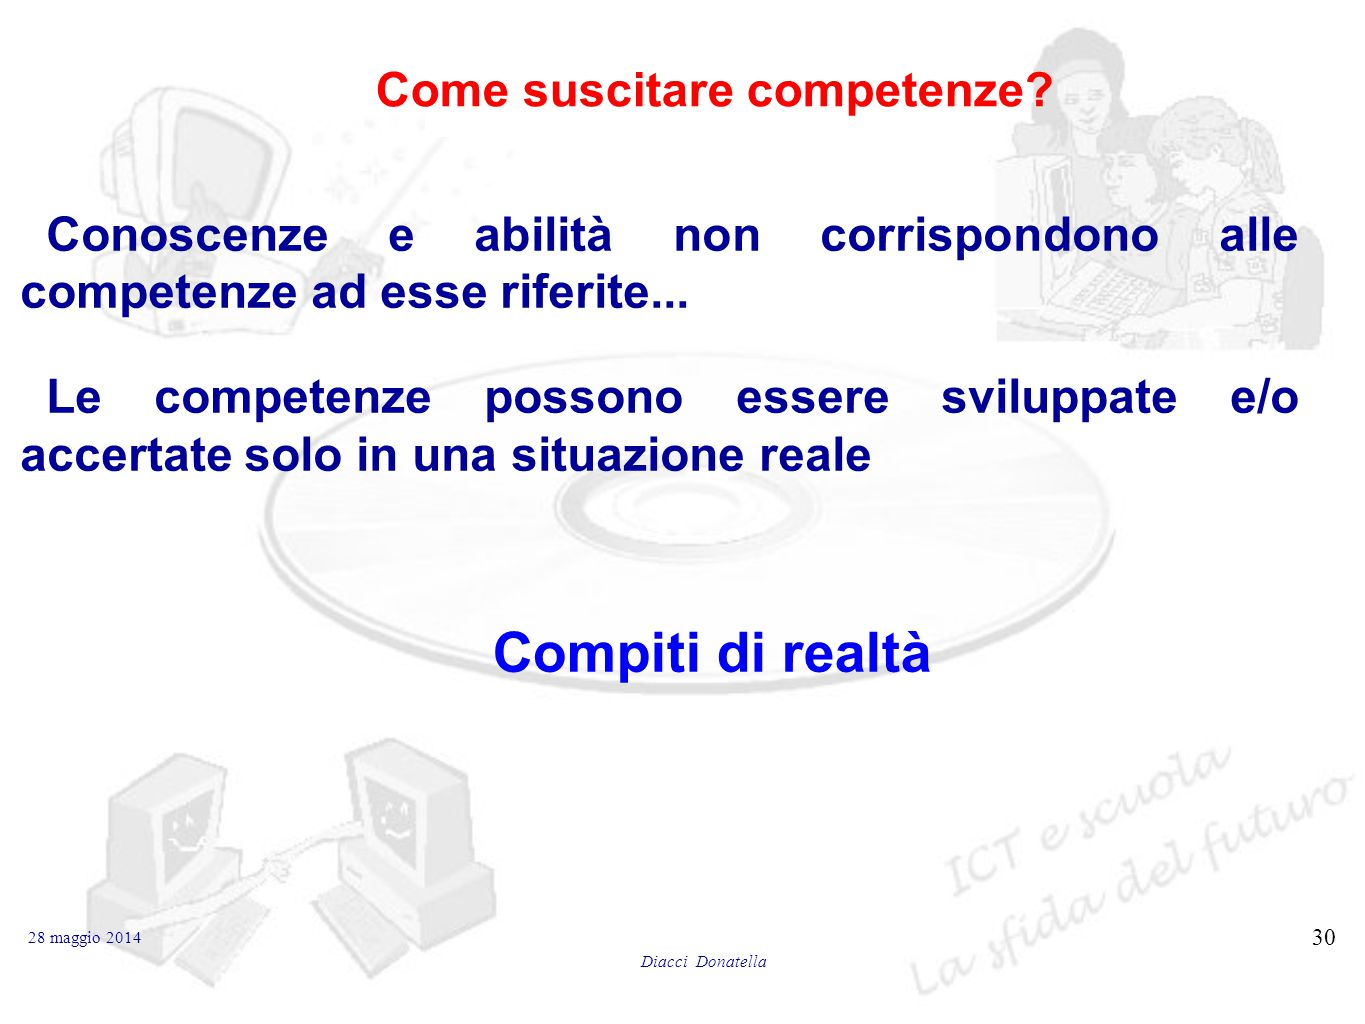 Come suscitare competenze